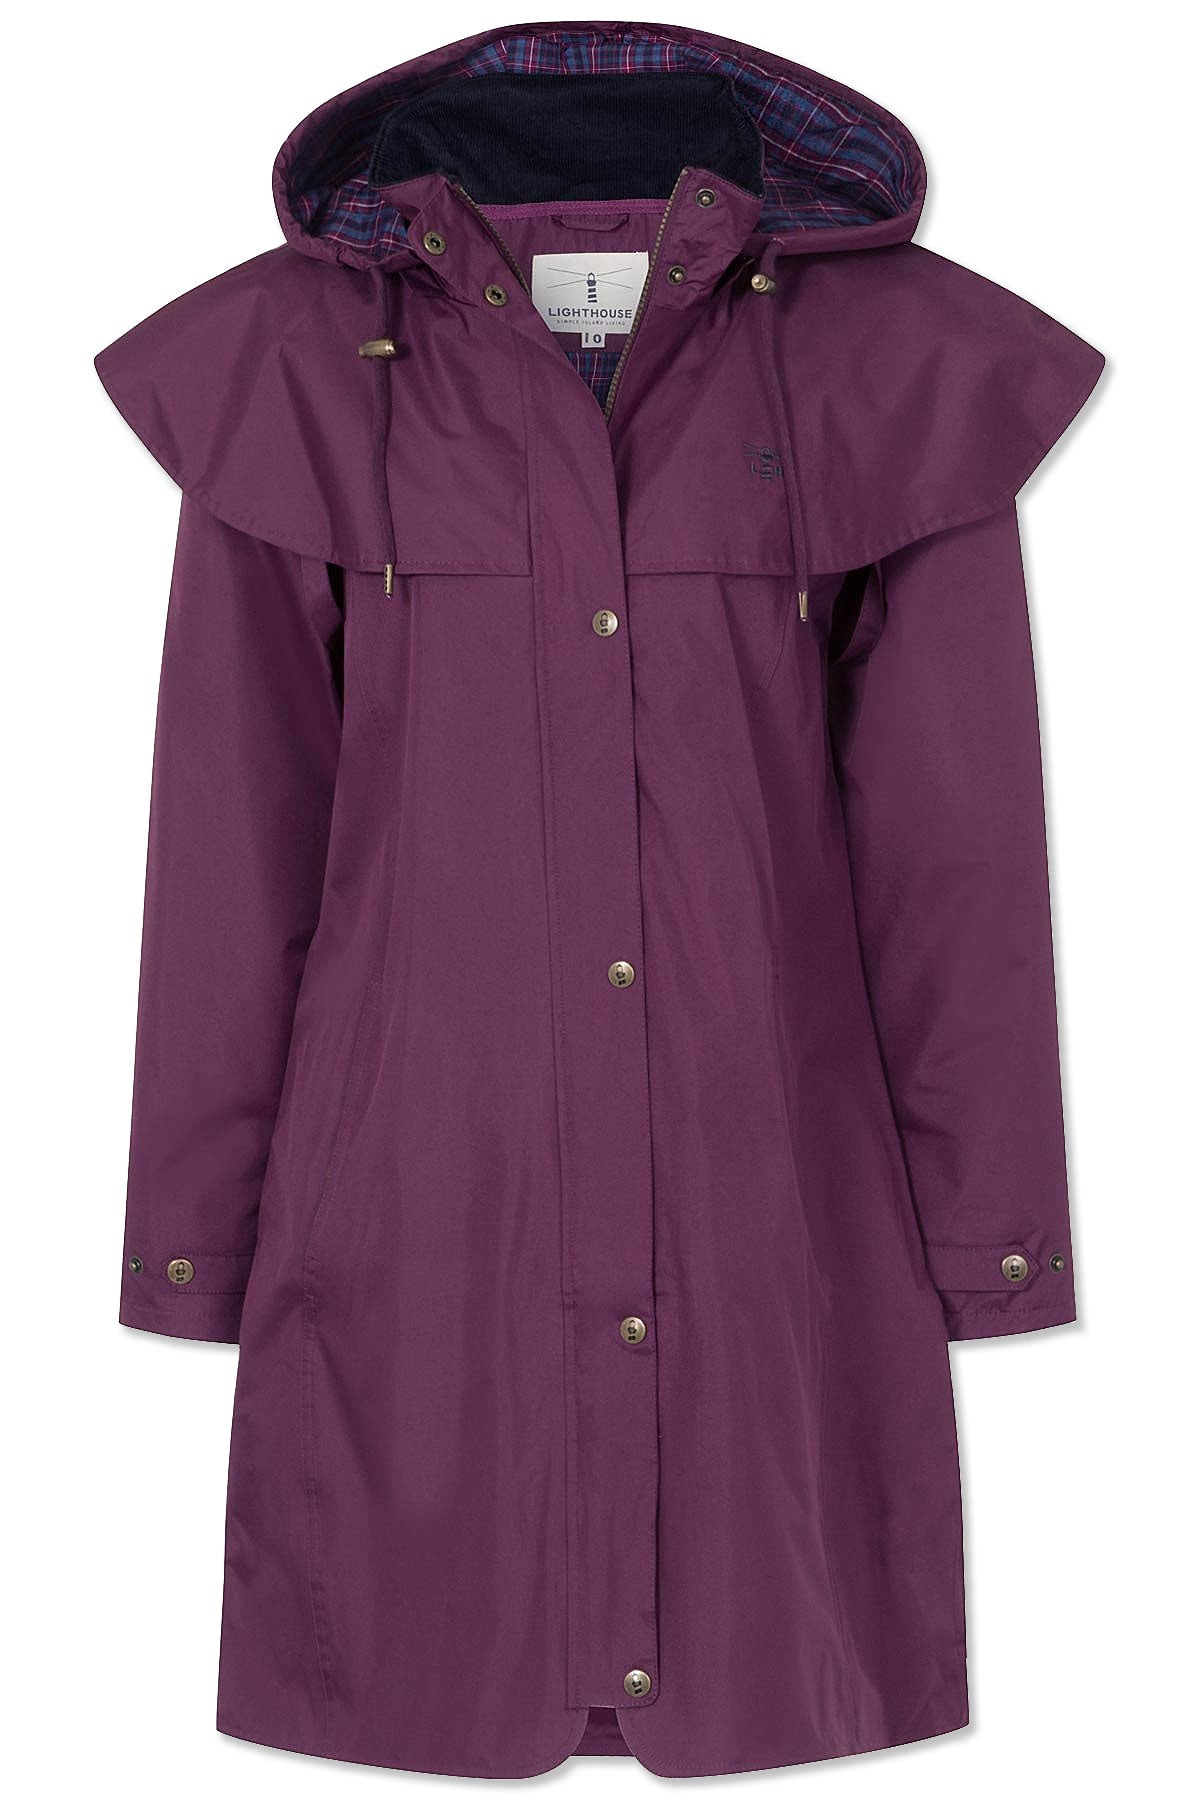 plum colour Lighthouse Outrider 3 Ladies Three Quarter Waterproof Coat